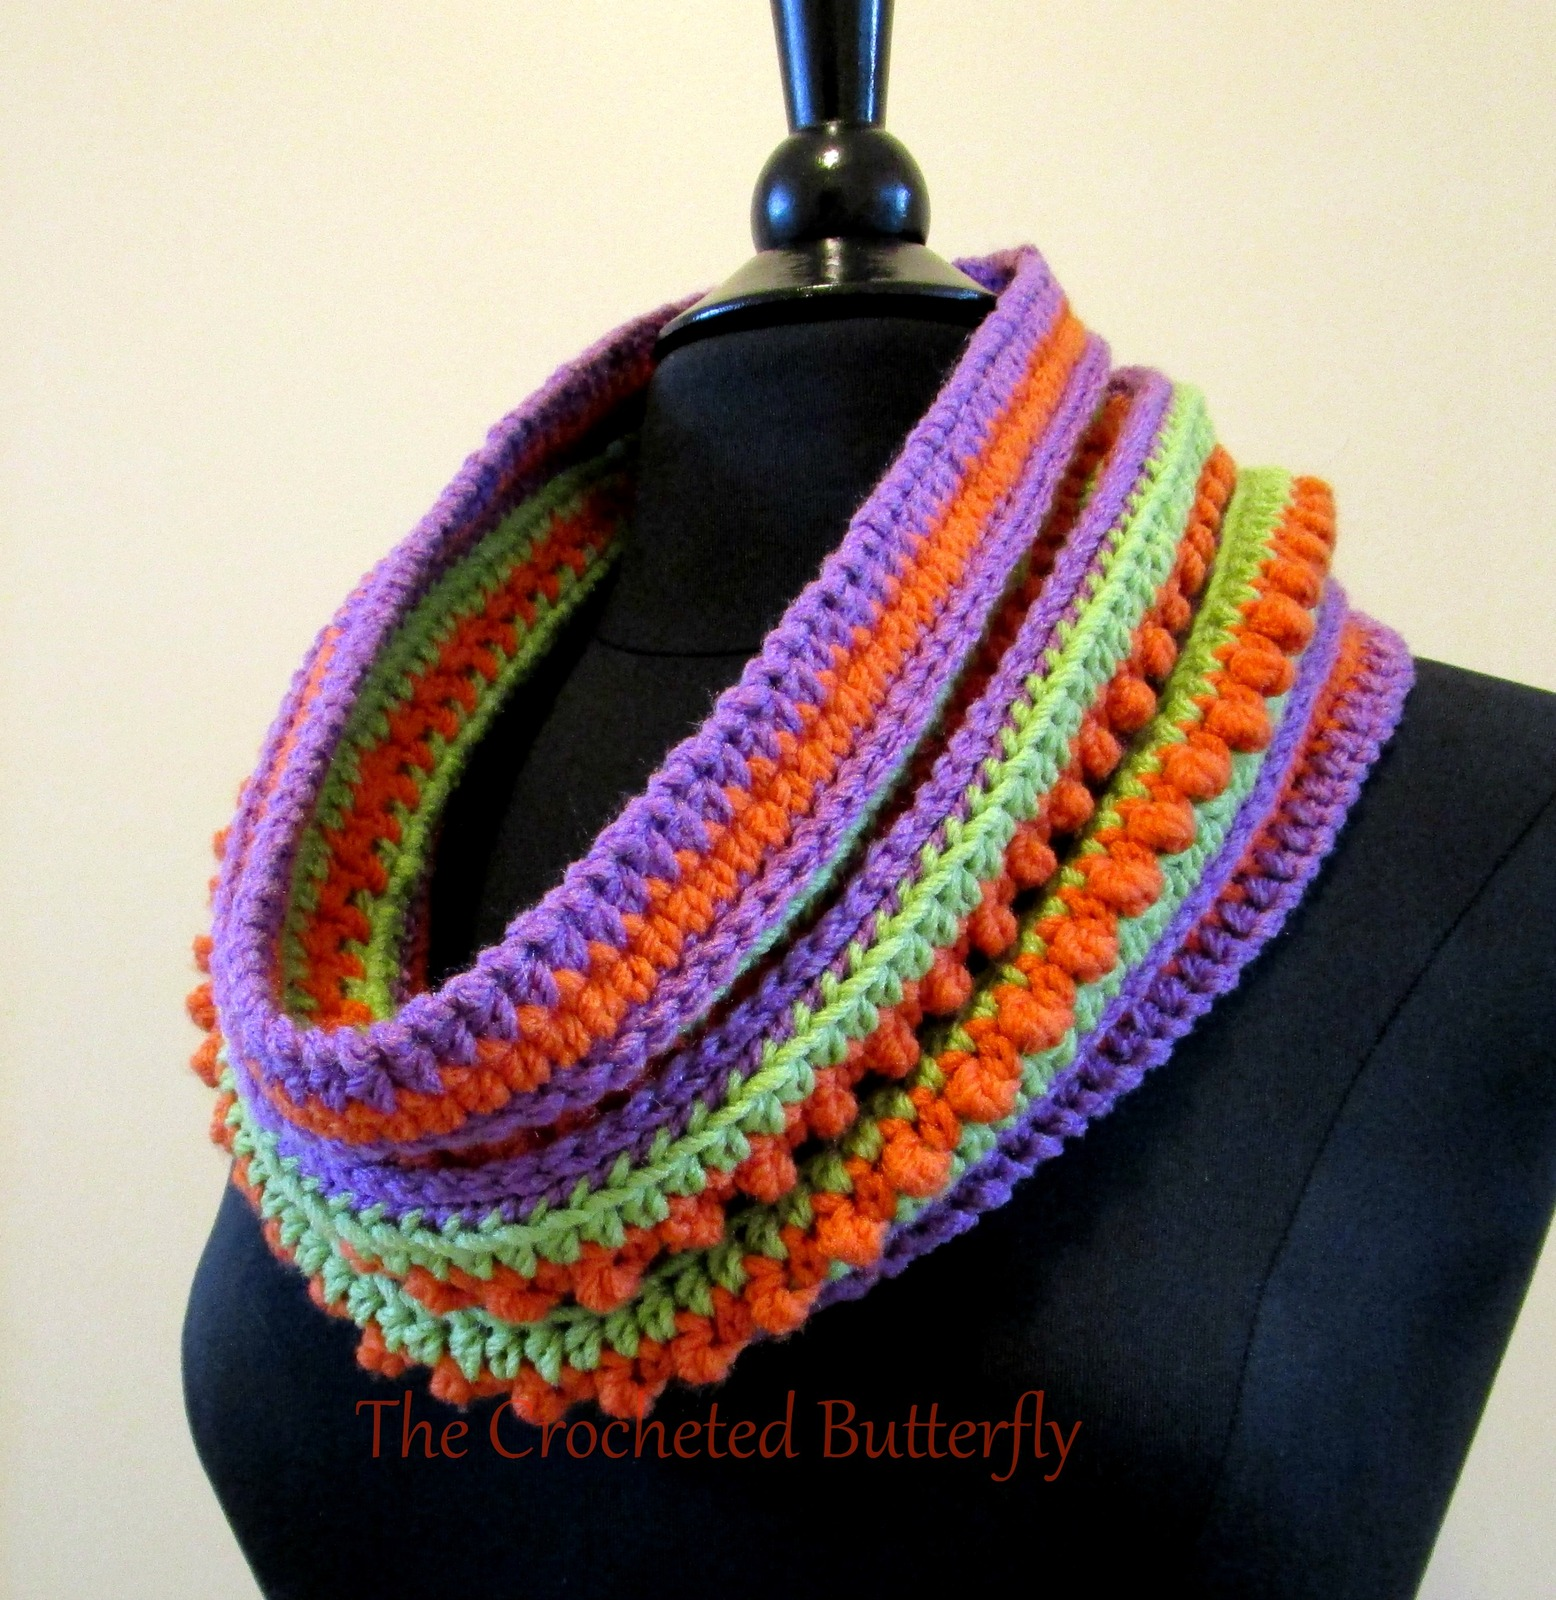 CROCHET PATTERN - Chi-Chi Cowl, lady's accessory, colorwork, scarf, handmade